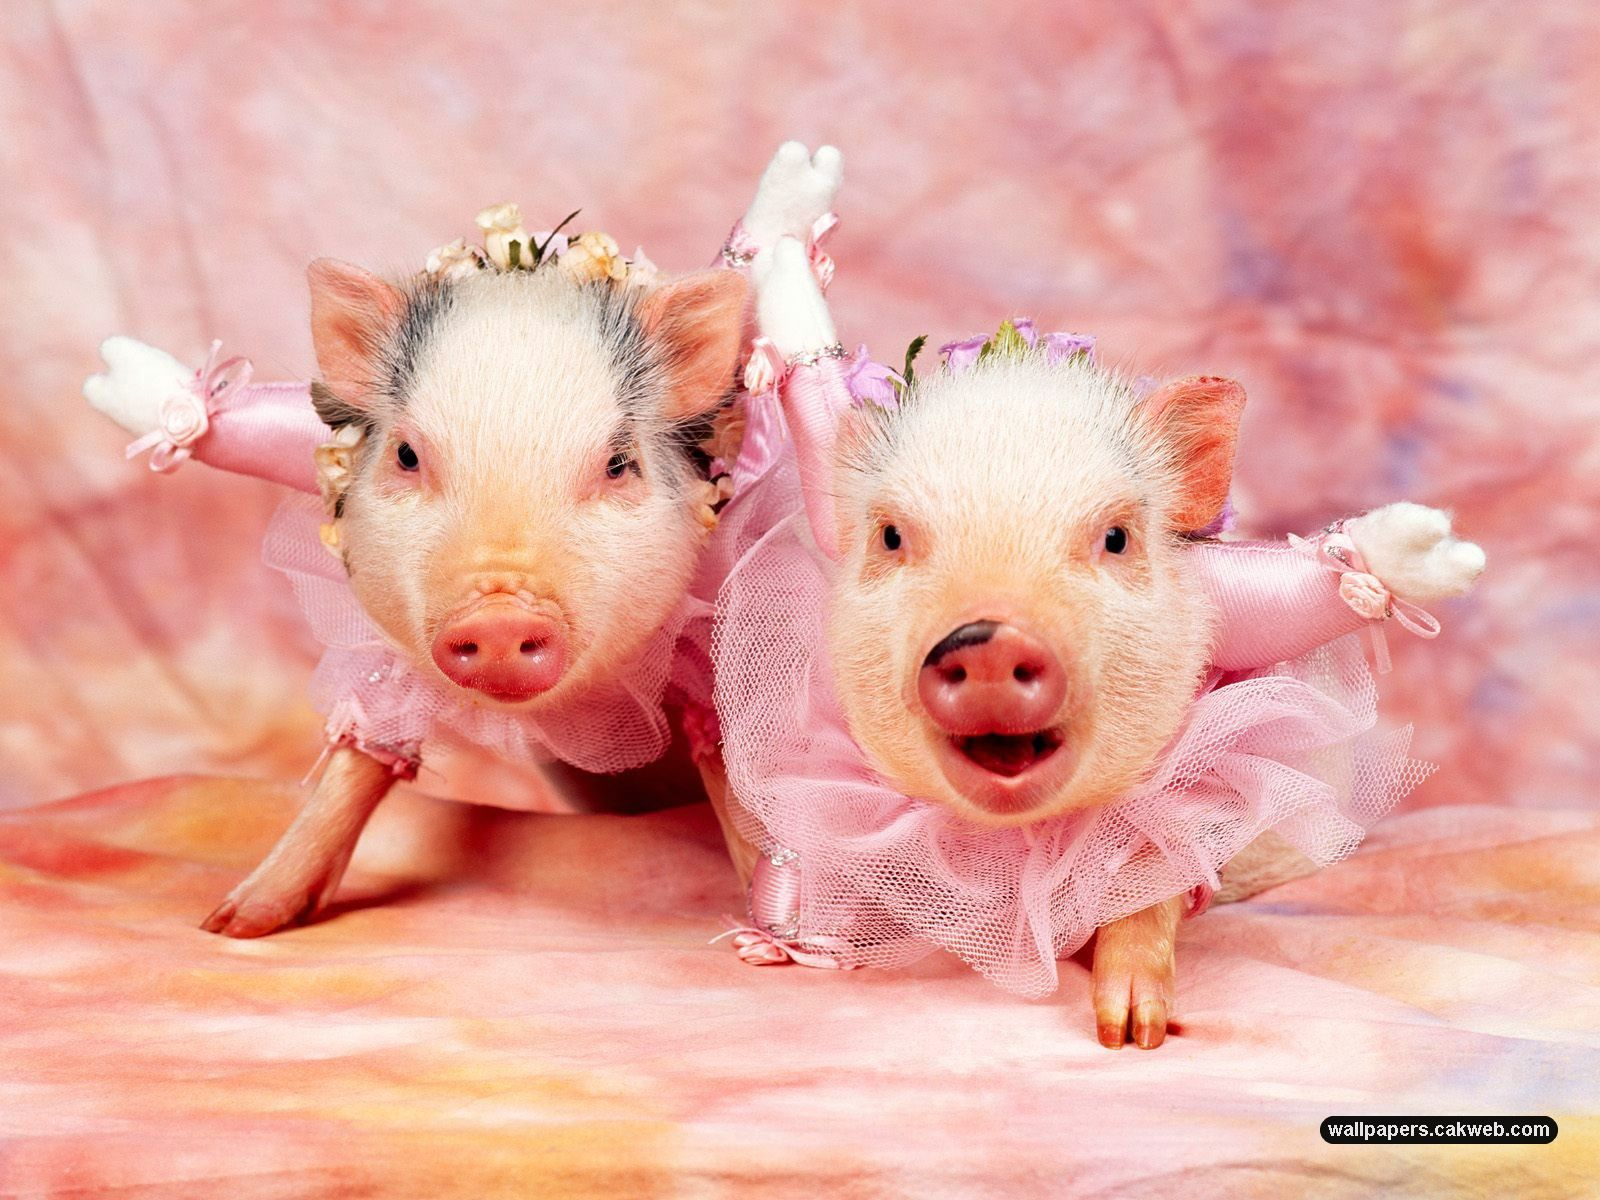 Cute Pig Wallpaper Backgrounds: Animal Pictures Wallpapers For Wall